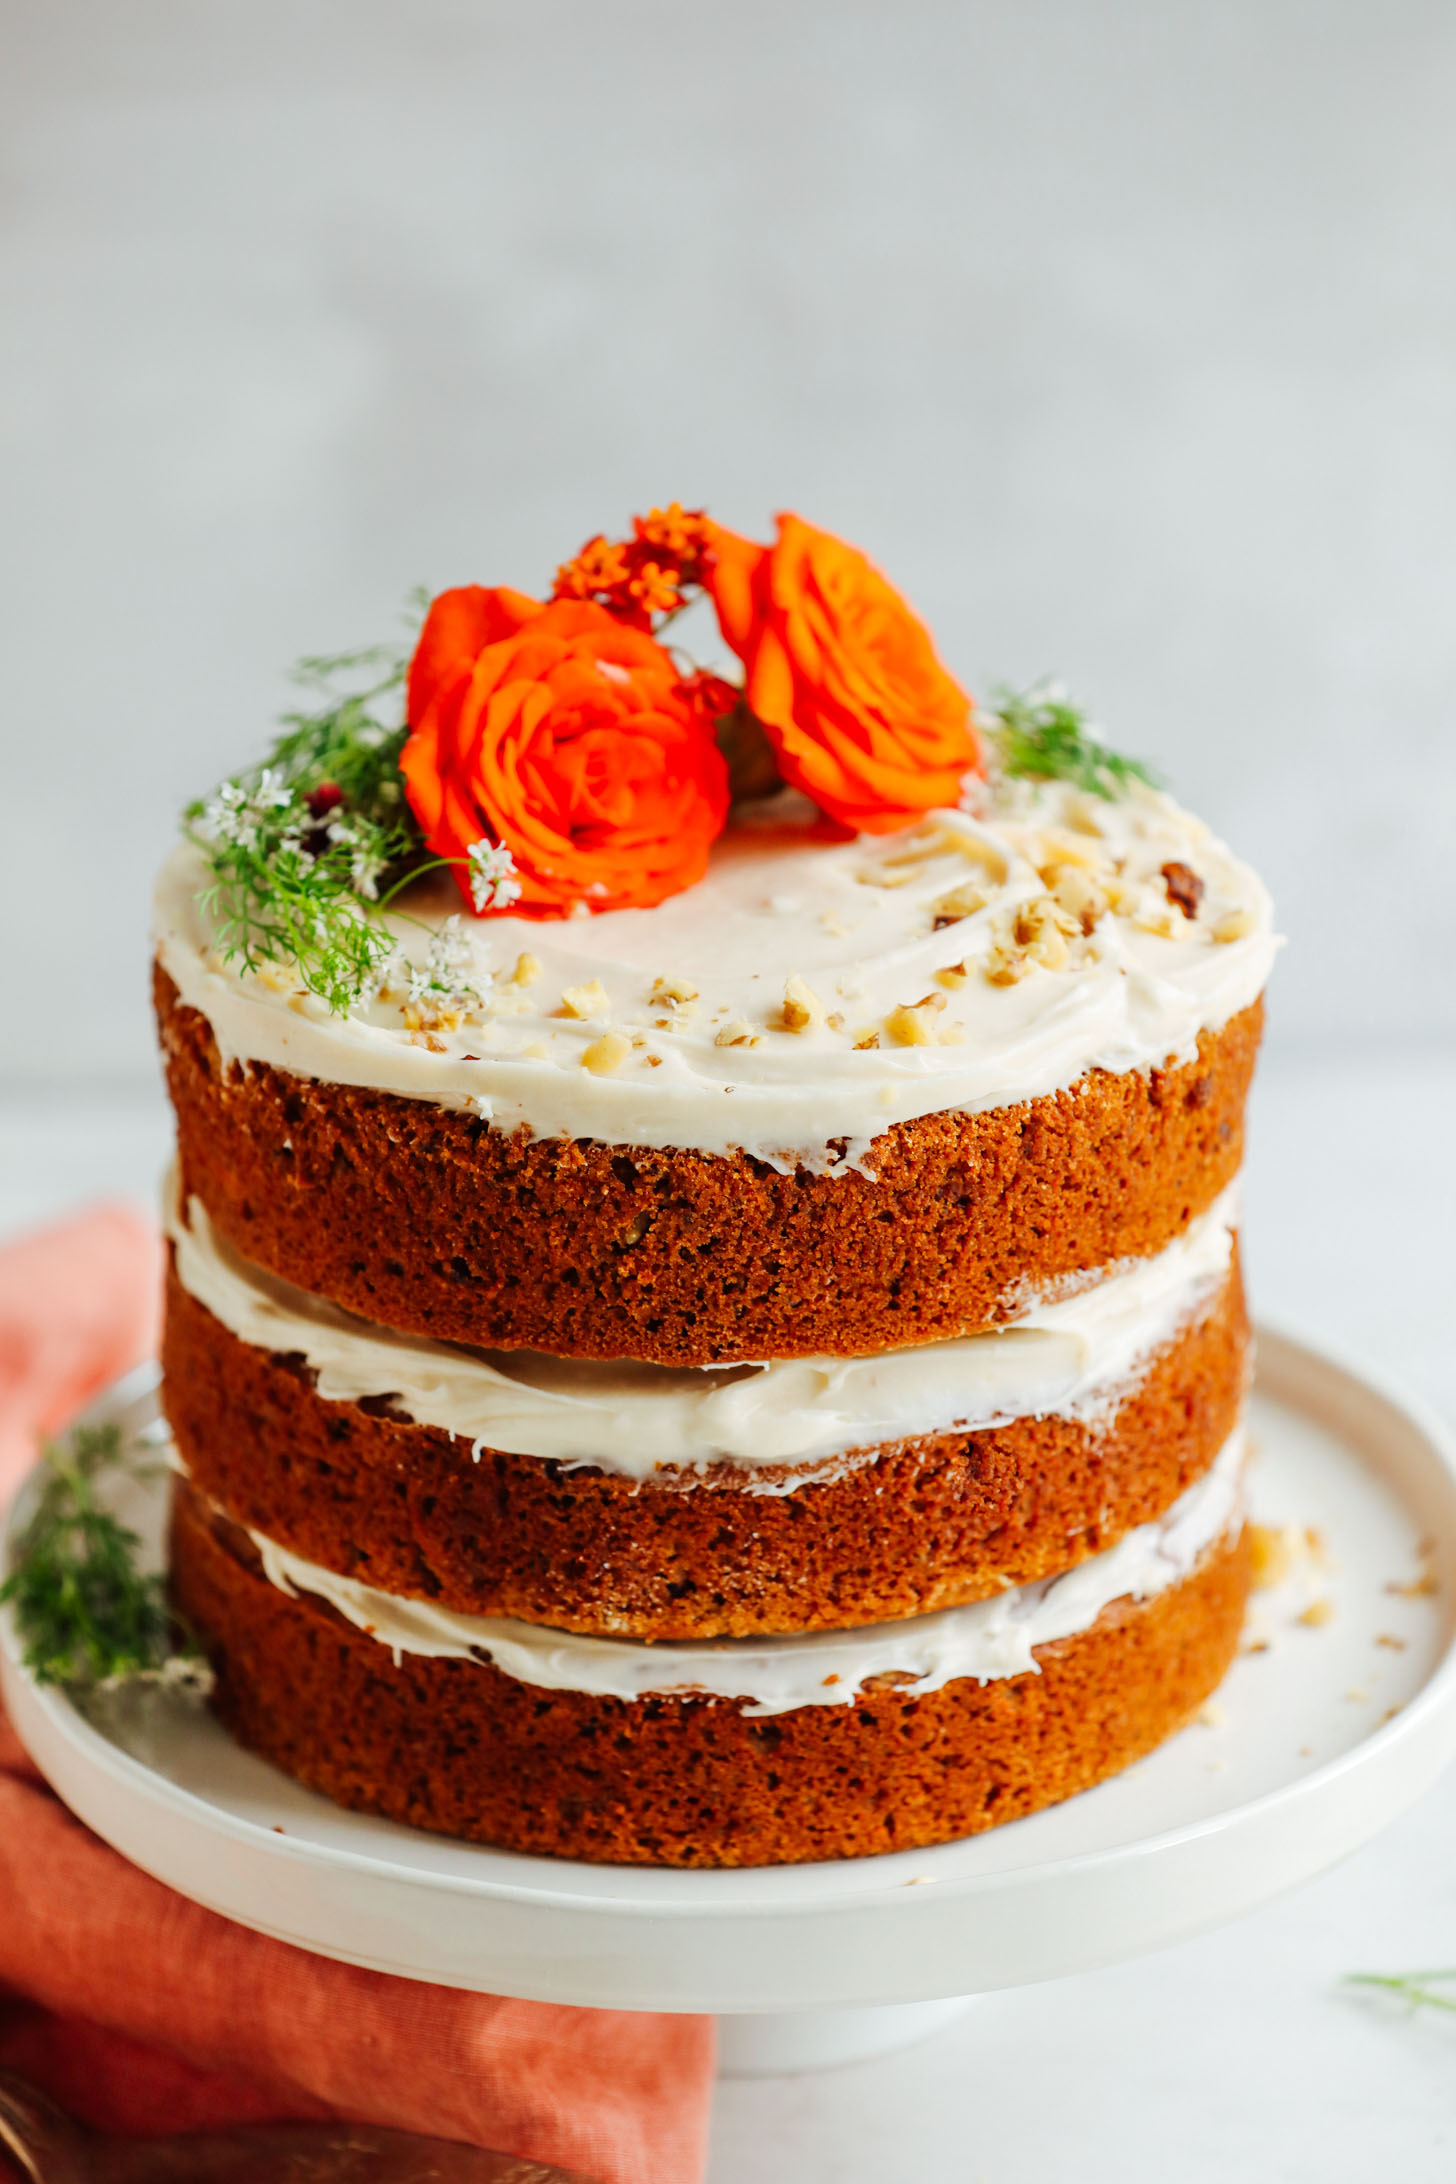 Vegan Carrot Cake Recipe With Applesauce